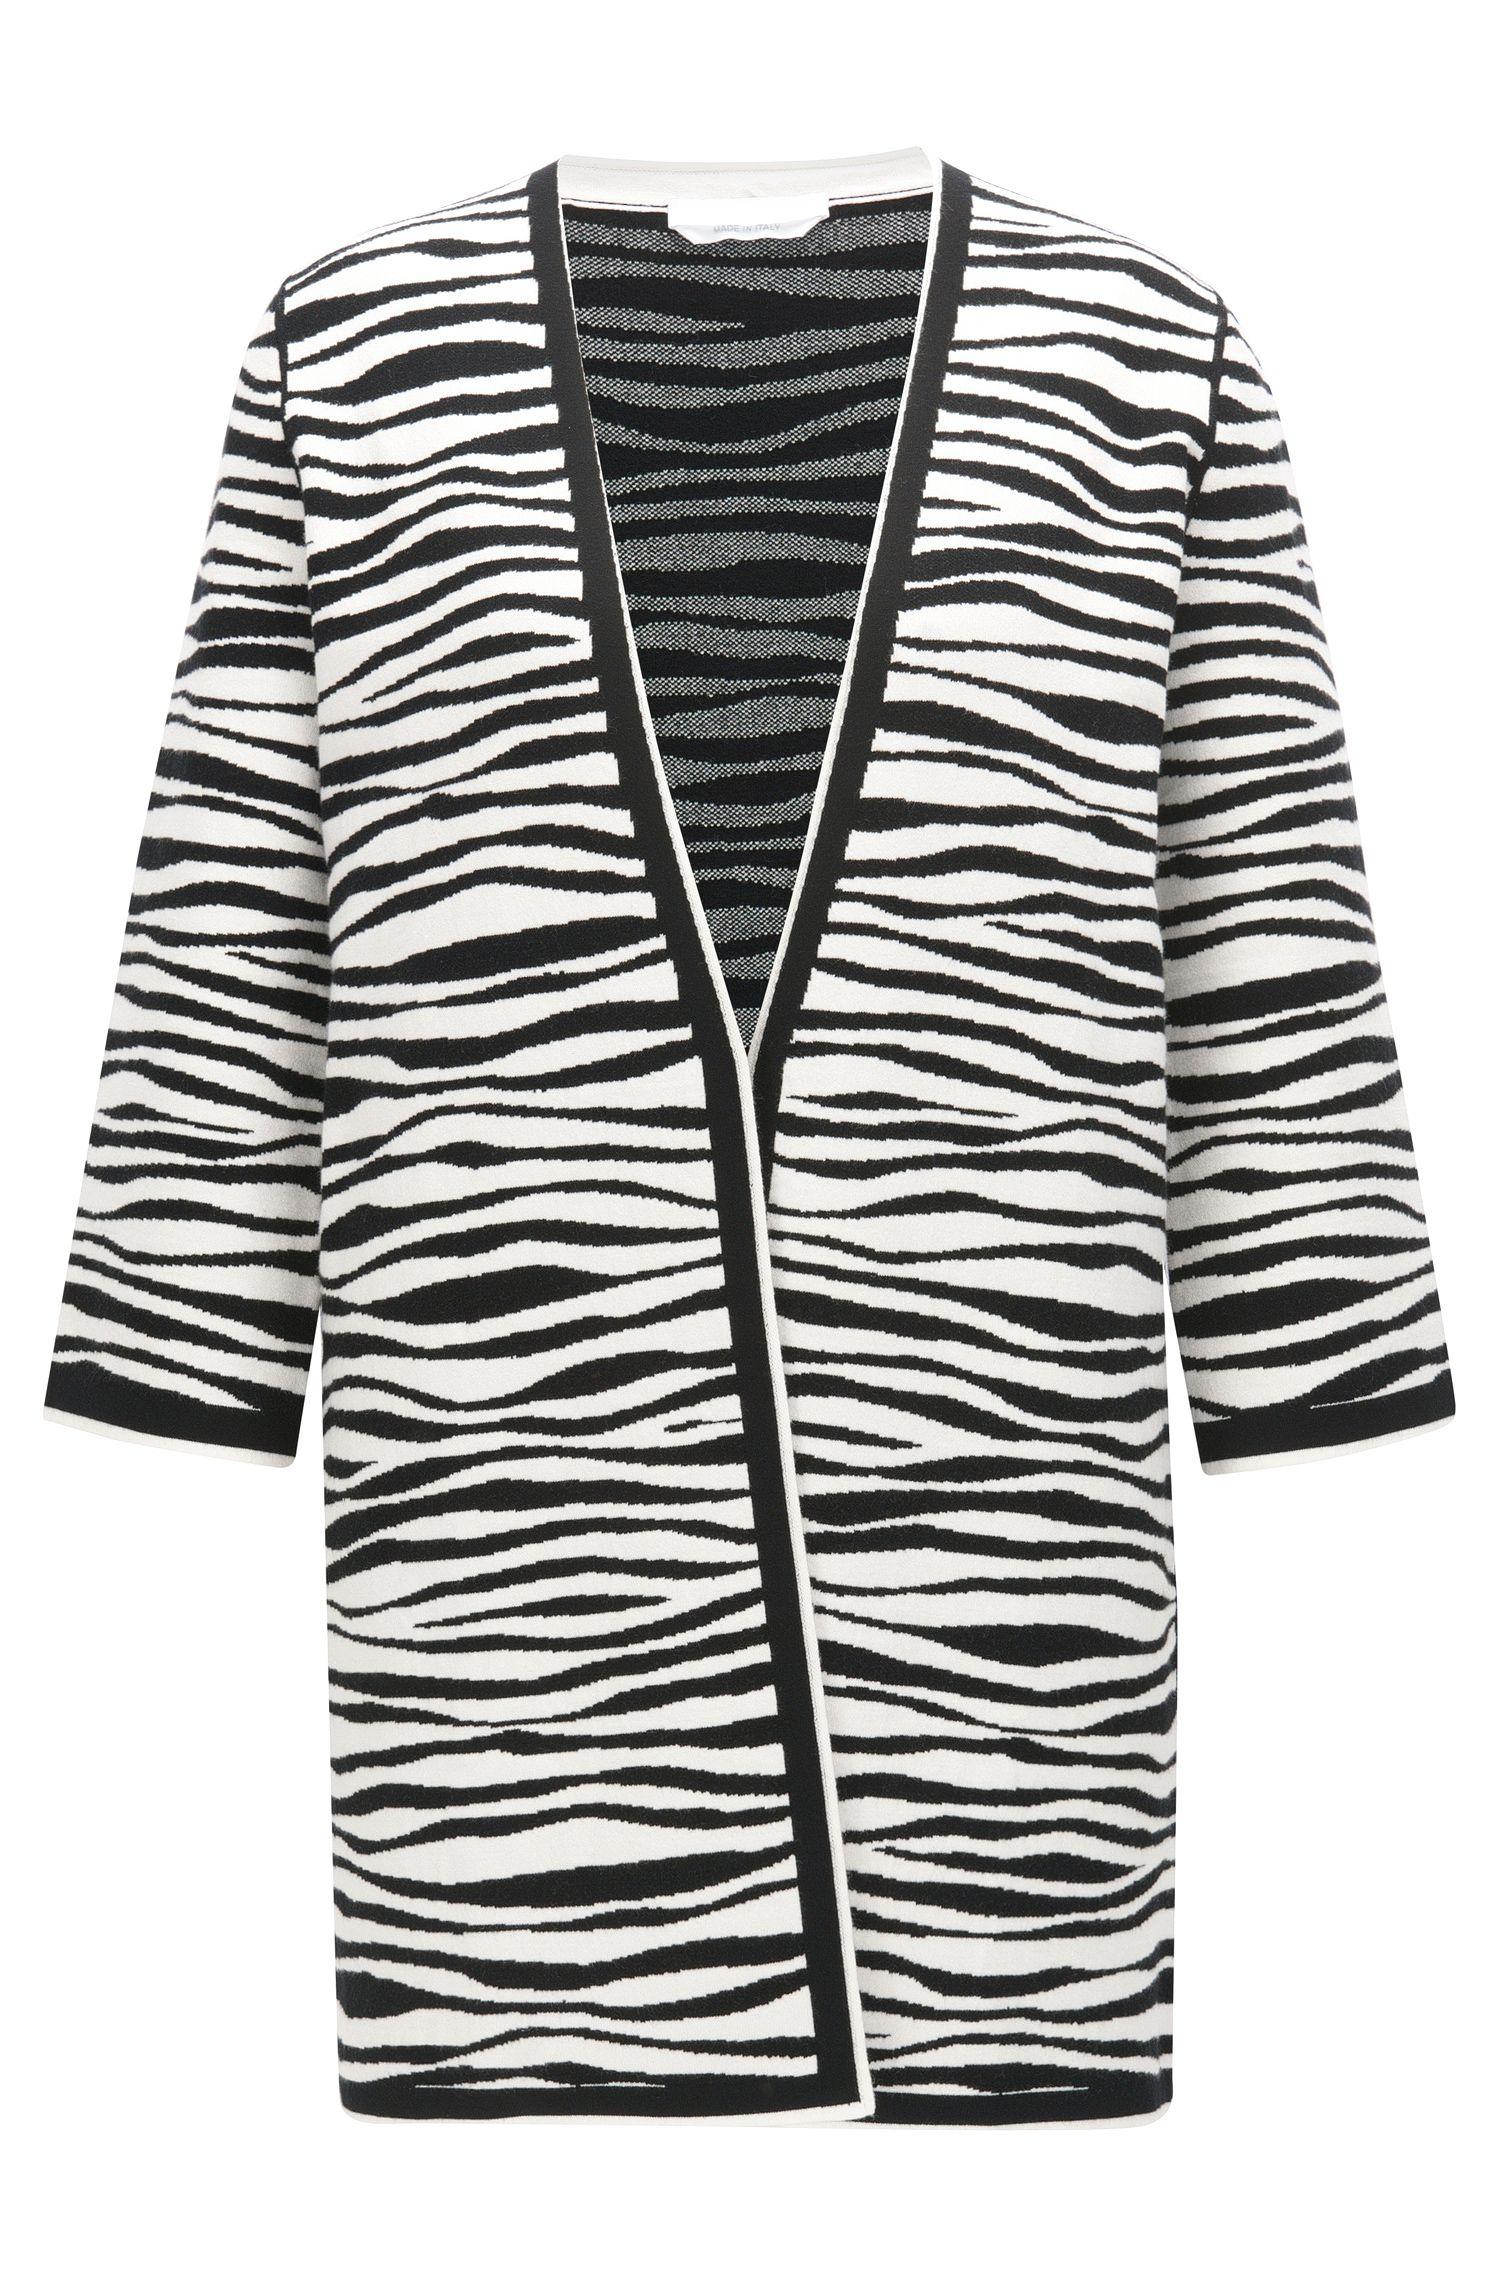 Regular-fit coat in zebra print